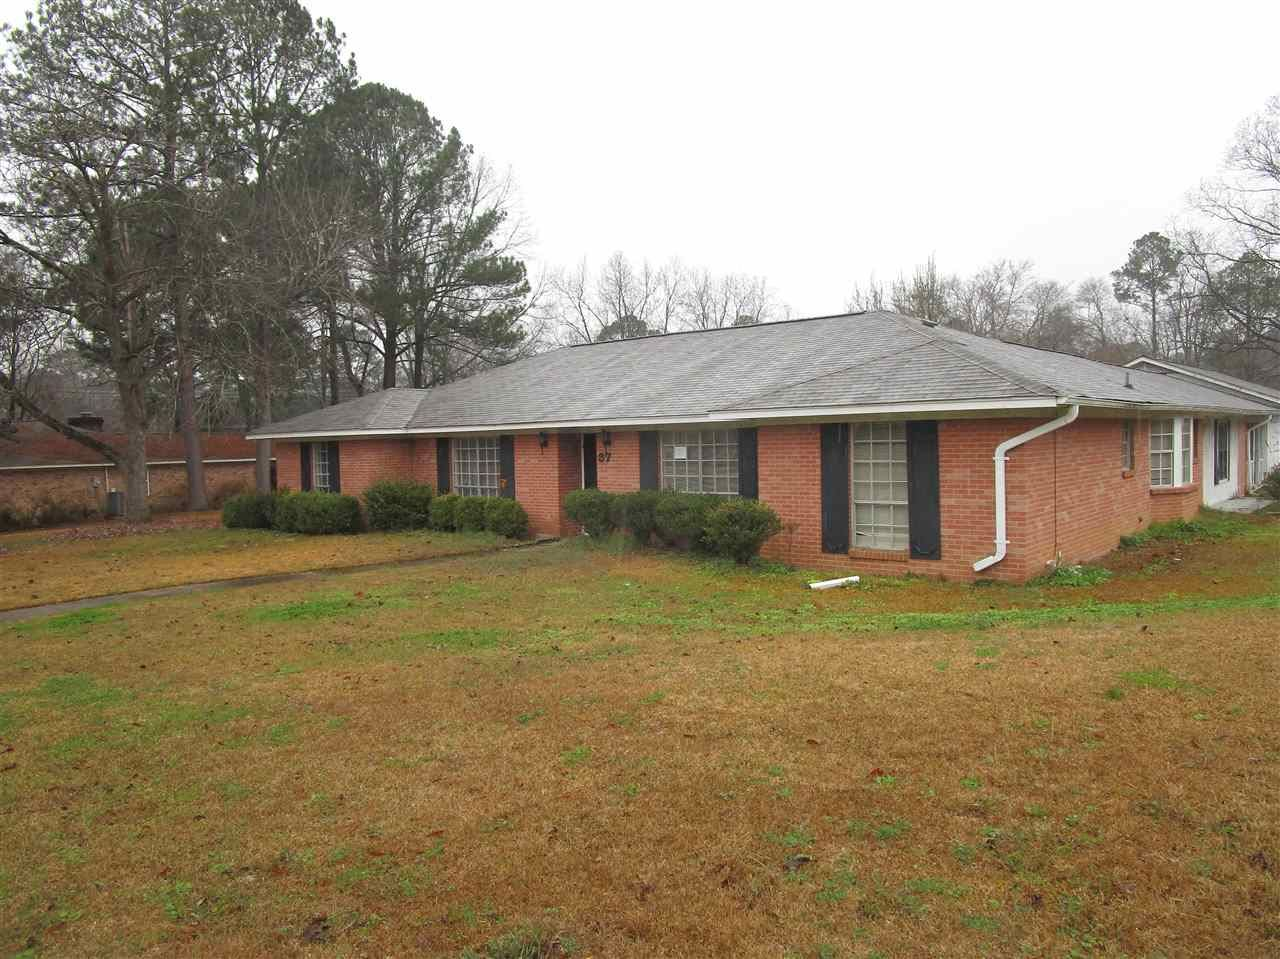 37 FOX GLEN CIR, Brandon, MS 39042 - MLS#: 338874